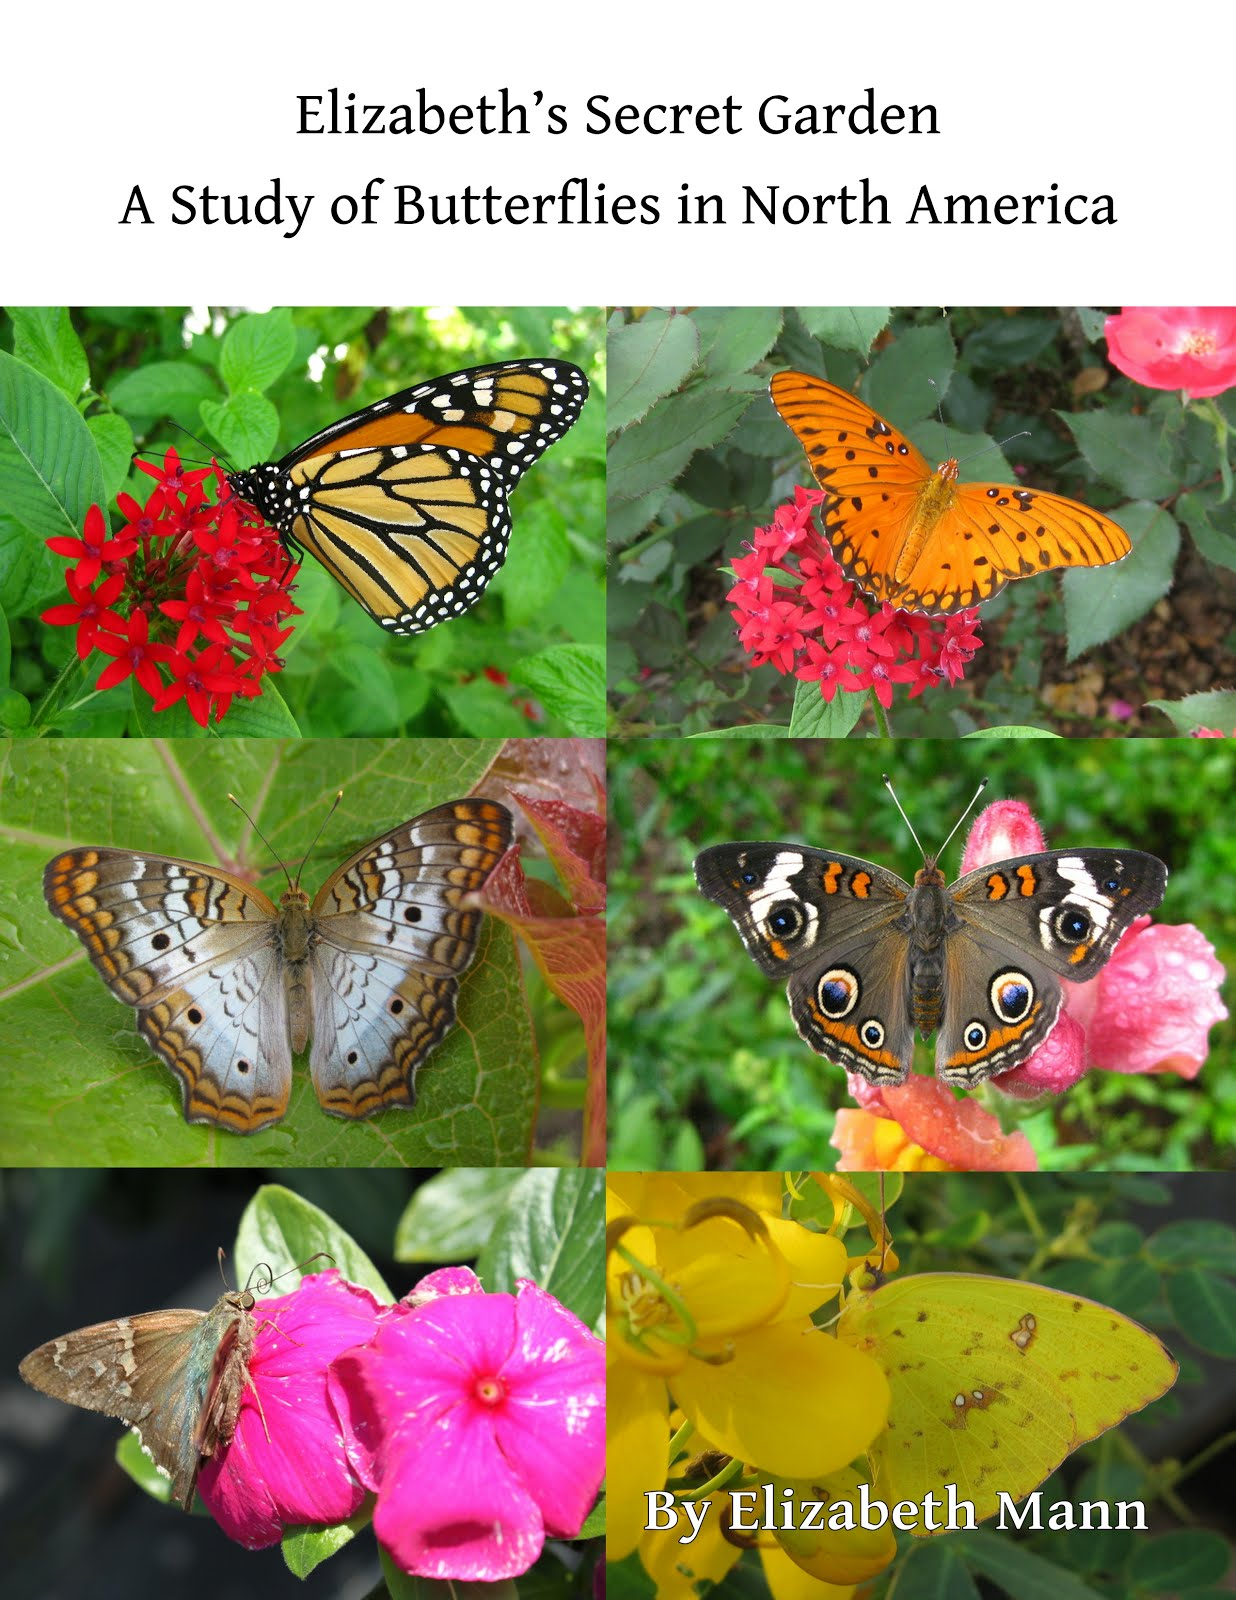 Click to Buy My Book on Butterflies